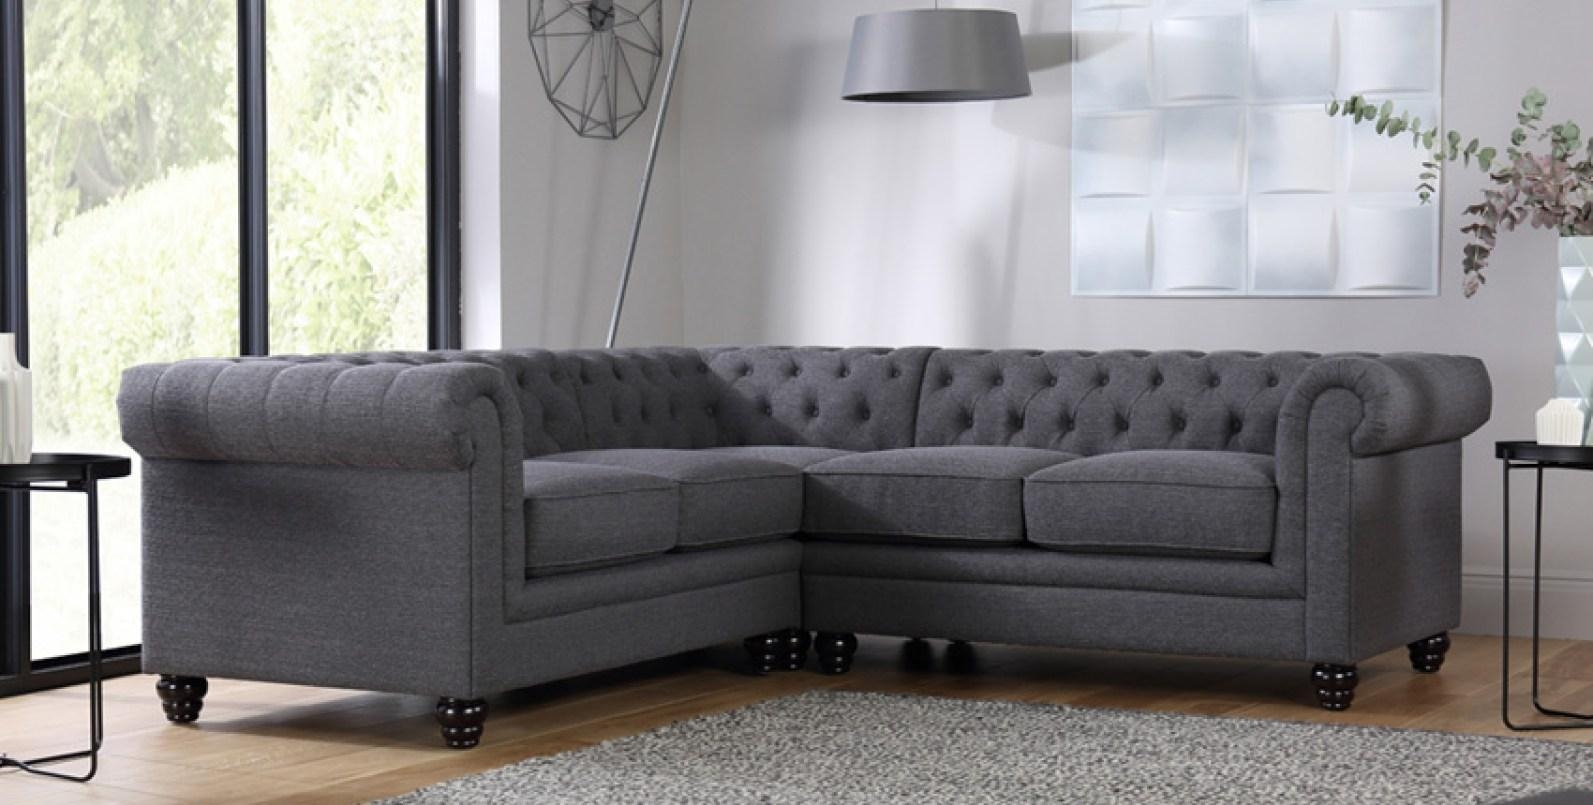 Sofa : New Model Corner Sofa Set With Warranty Offer Pricechennaiw Within 2X2 Corner Sofas (Image 14 of 21)